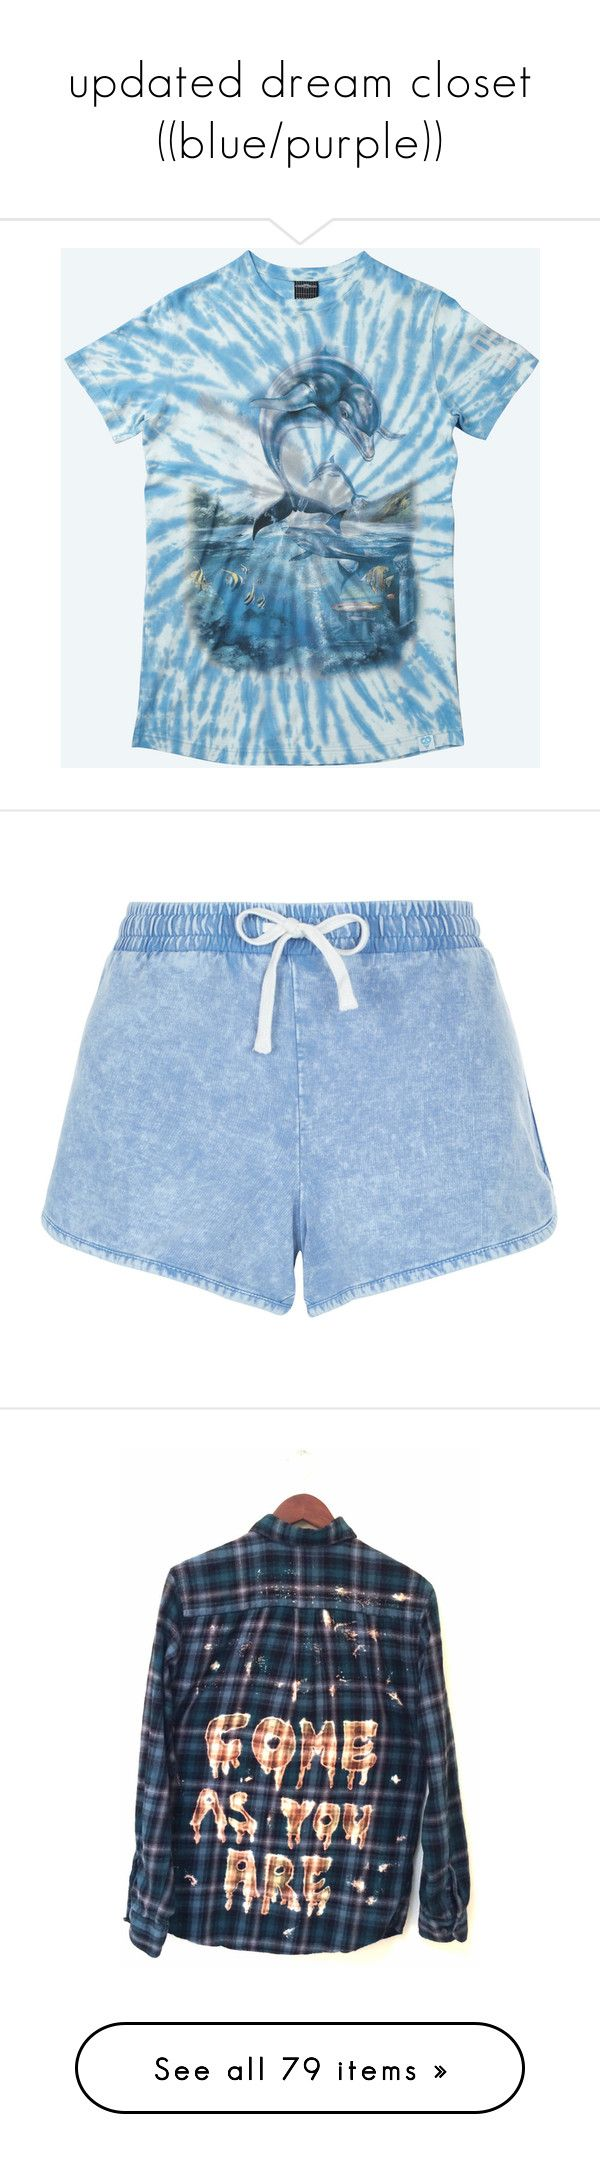 """""""updated dream closet ((blue/purple))"""" by amberundead ❤ liked on Polyvore featuring drop dead, shorts, bottoms, duck egg, cotton shorts, light blue shorts, summer shorts, acid wash shorts, mini shorts and tops"""